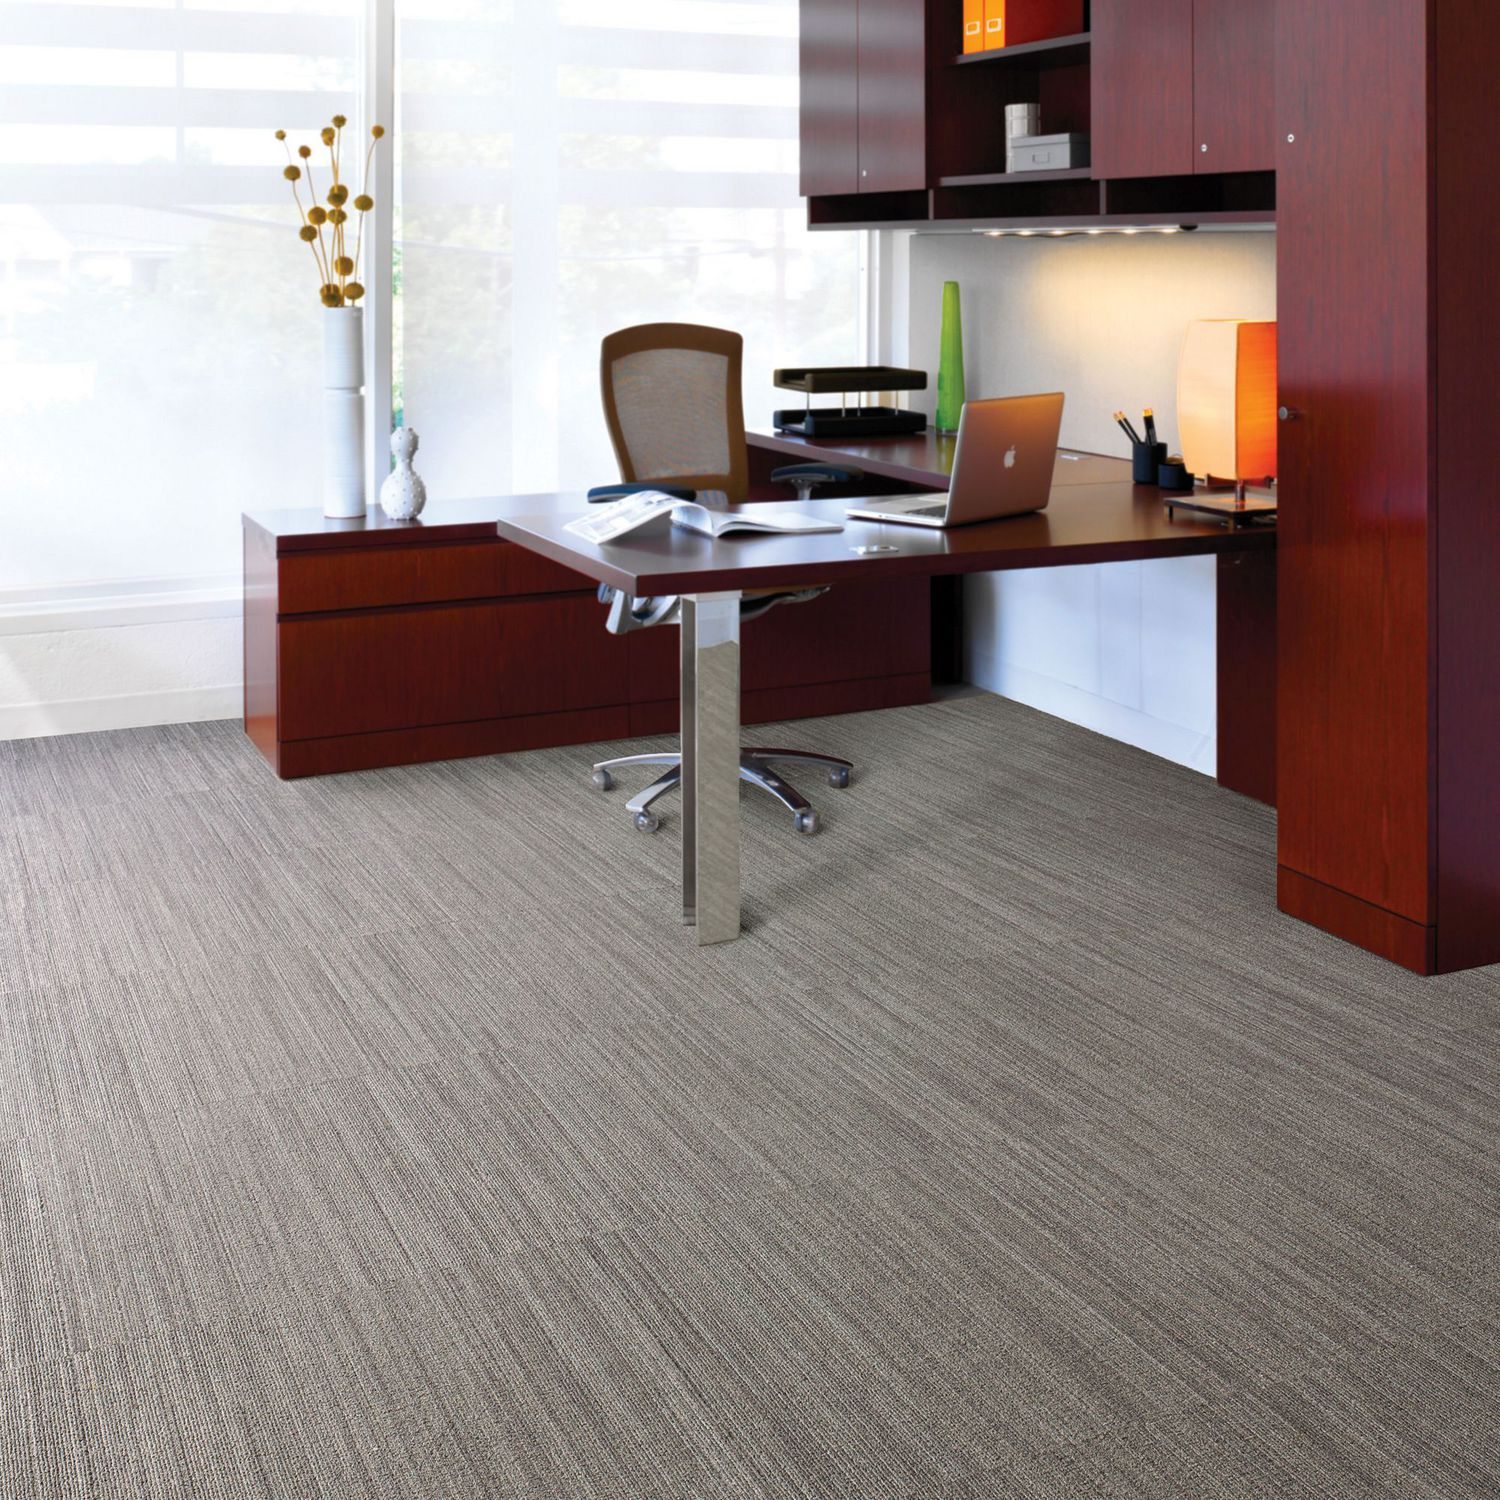 Image of: Carpet Tile State Of Mind Enthralled Ii Mohawk Group Tufted Loop Pile Nylon